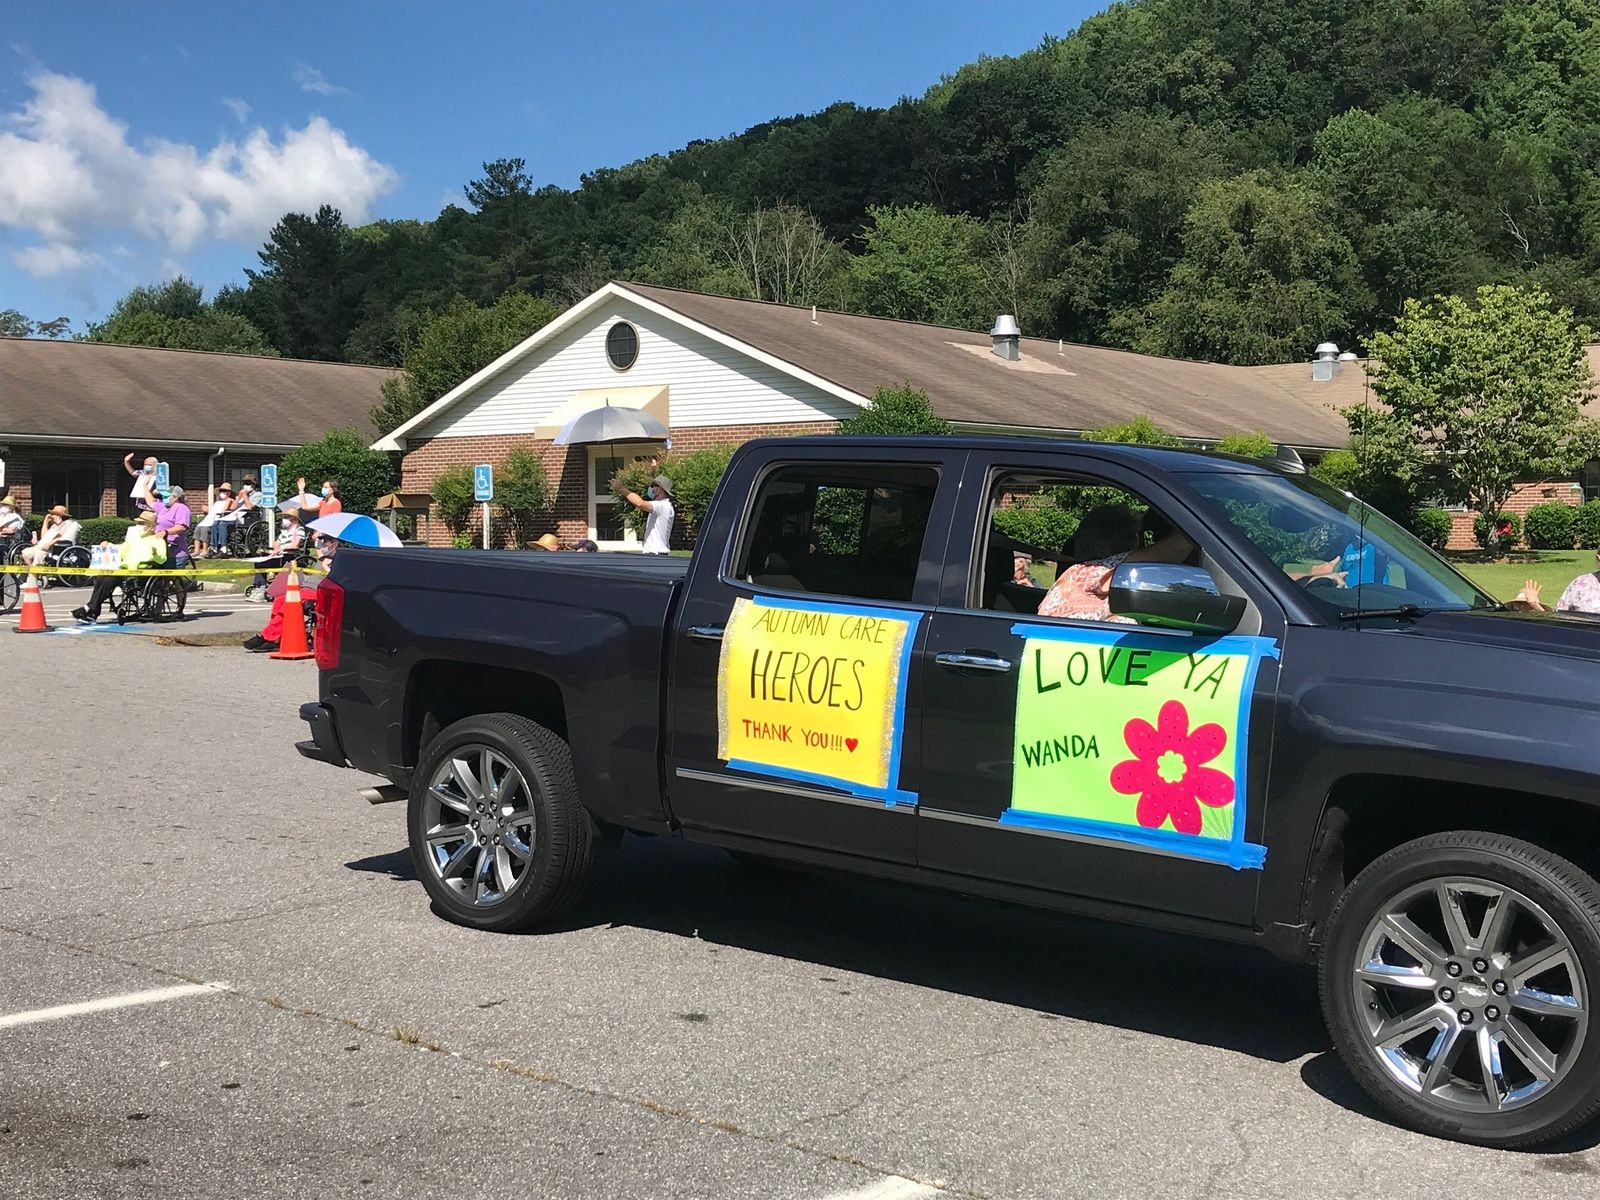 Local law enforcement, fire and EMS staff led the way in greeting about 70 residents gathered outside of Autumn Care of Waynesville on July 11 who haven't been able to visit with loved ones for about four months due to the pandemic. (Photo credit: WLOS Staff)